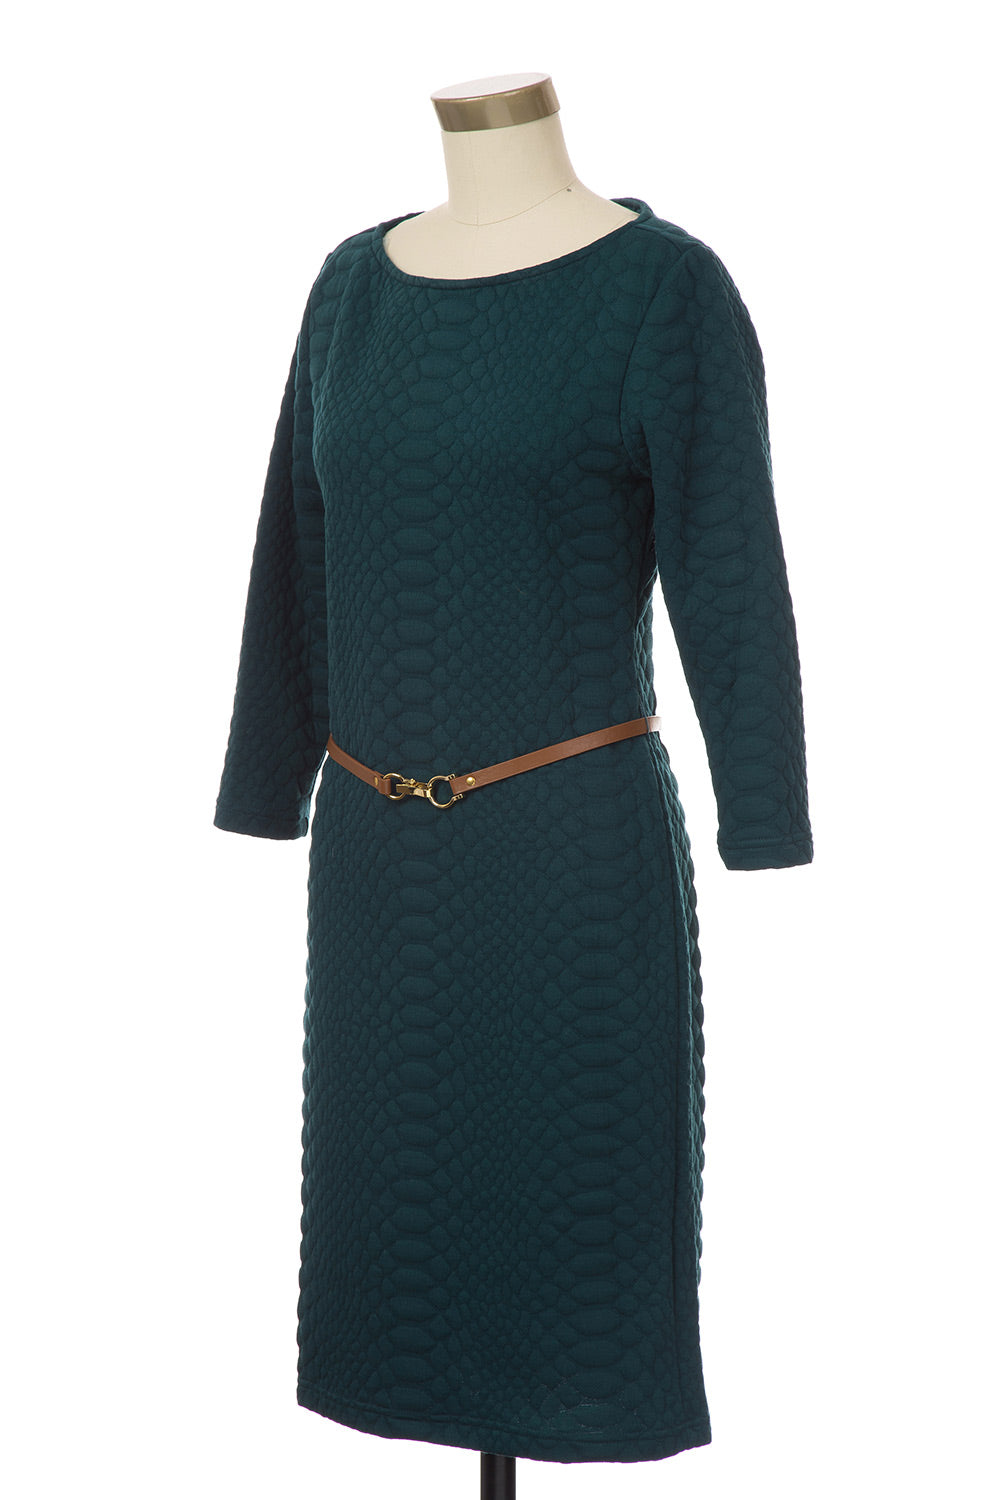 Type 3 Cocktail Party Dress in Green